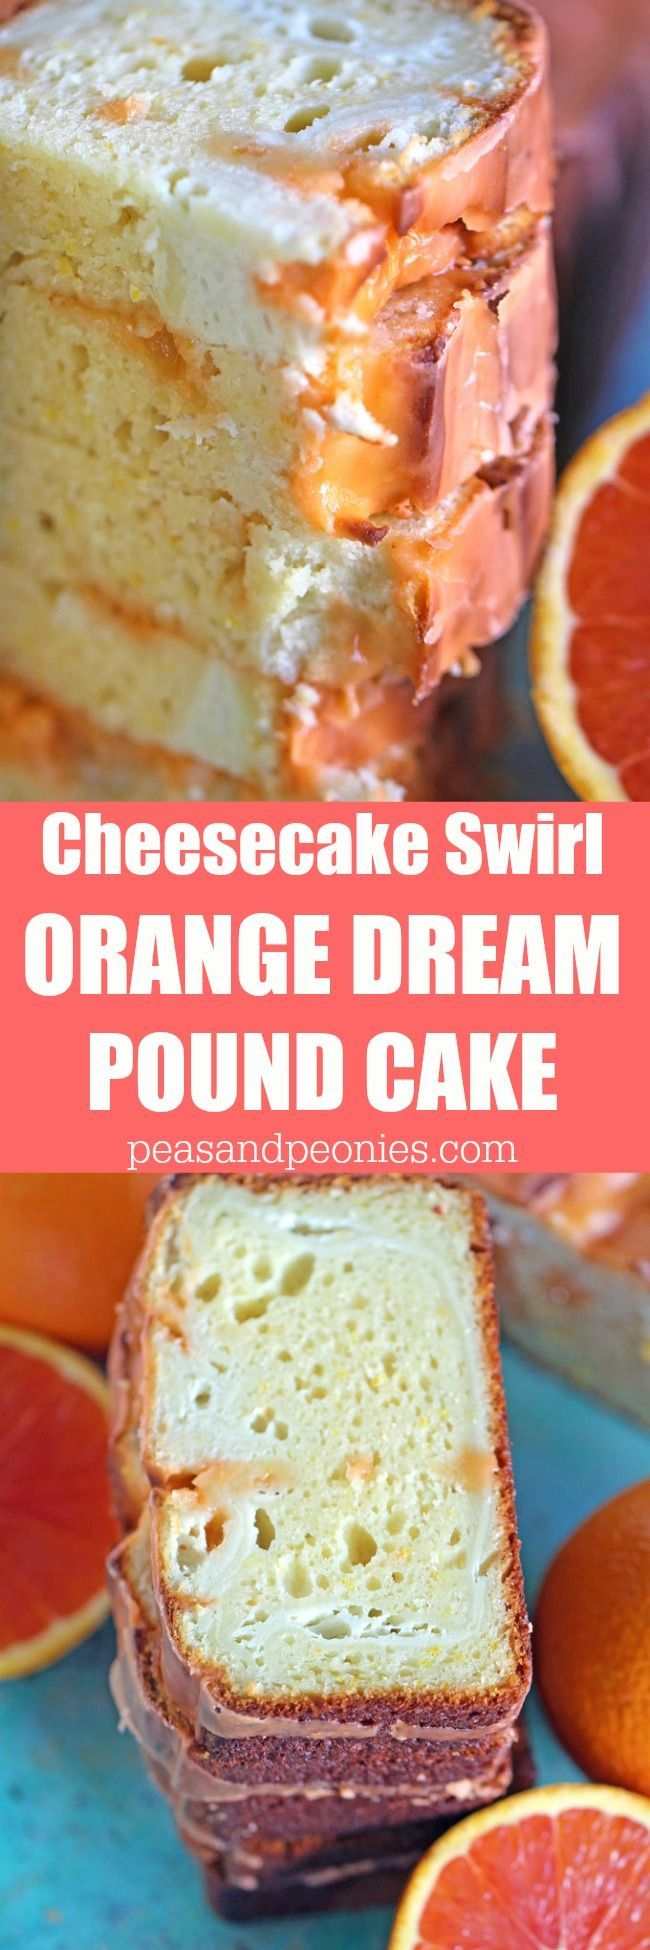 Dreamy Orange Pound Cake with Orange Glaze is rich and flavorful, with a beautiful orange scent and a creamy orange flavored cheesecake swirl.